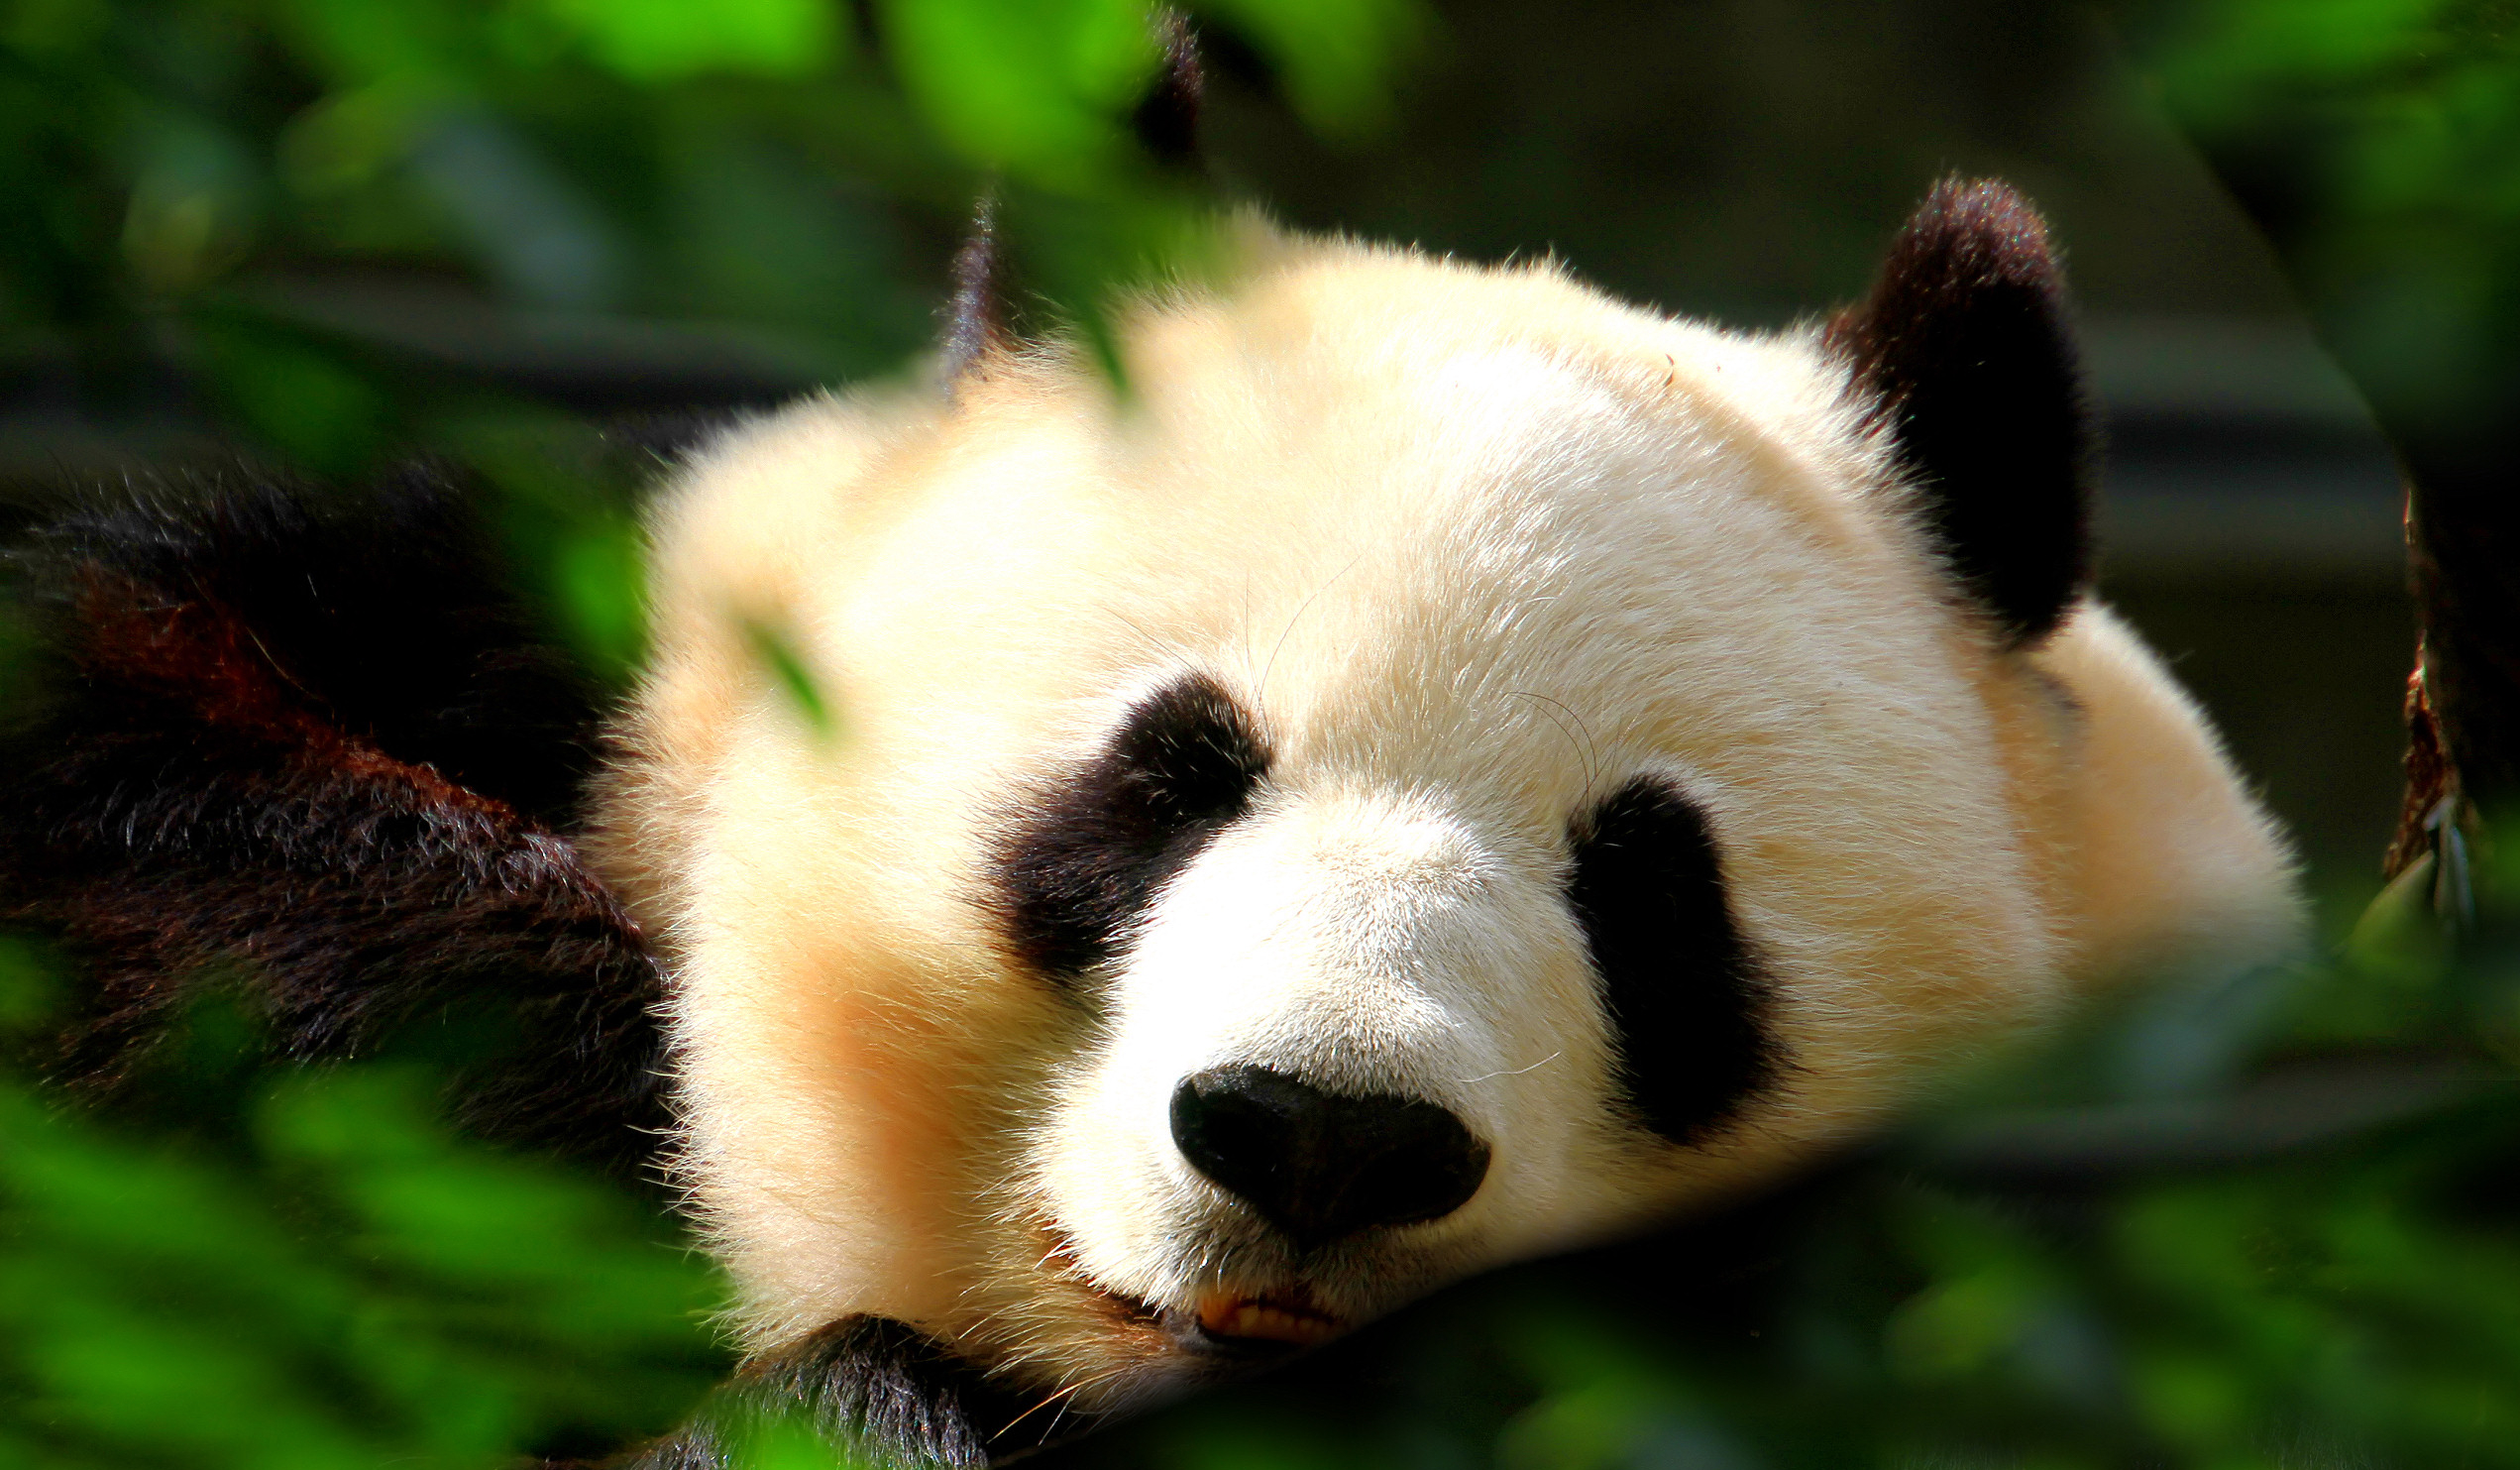 Giant Panda Wallpapers, Pictures, Image